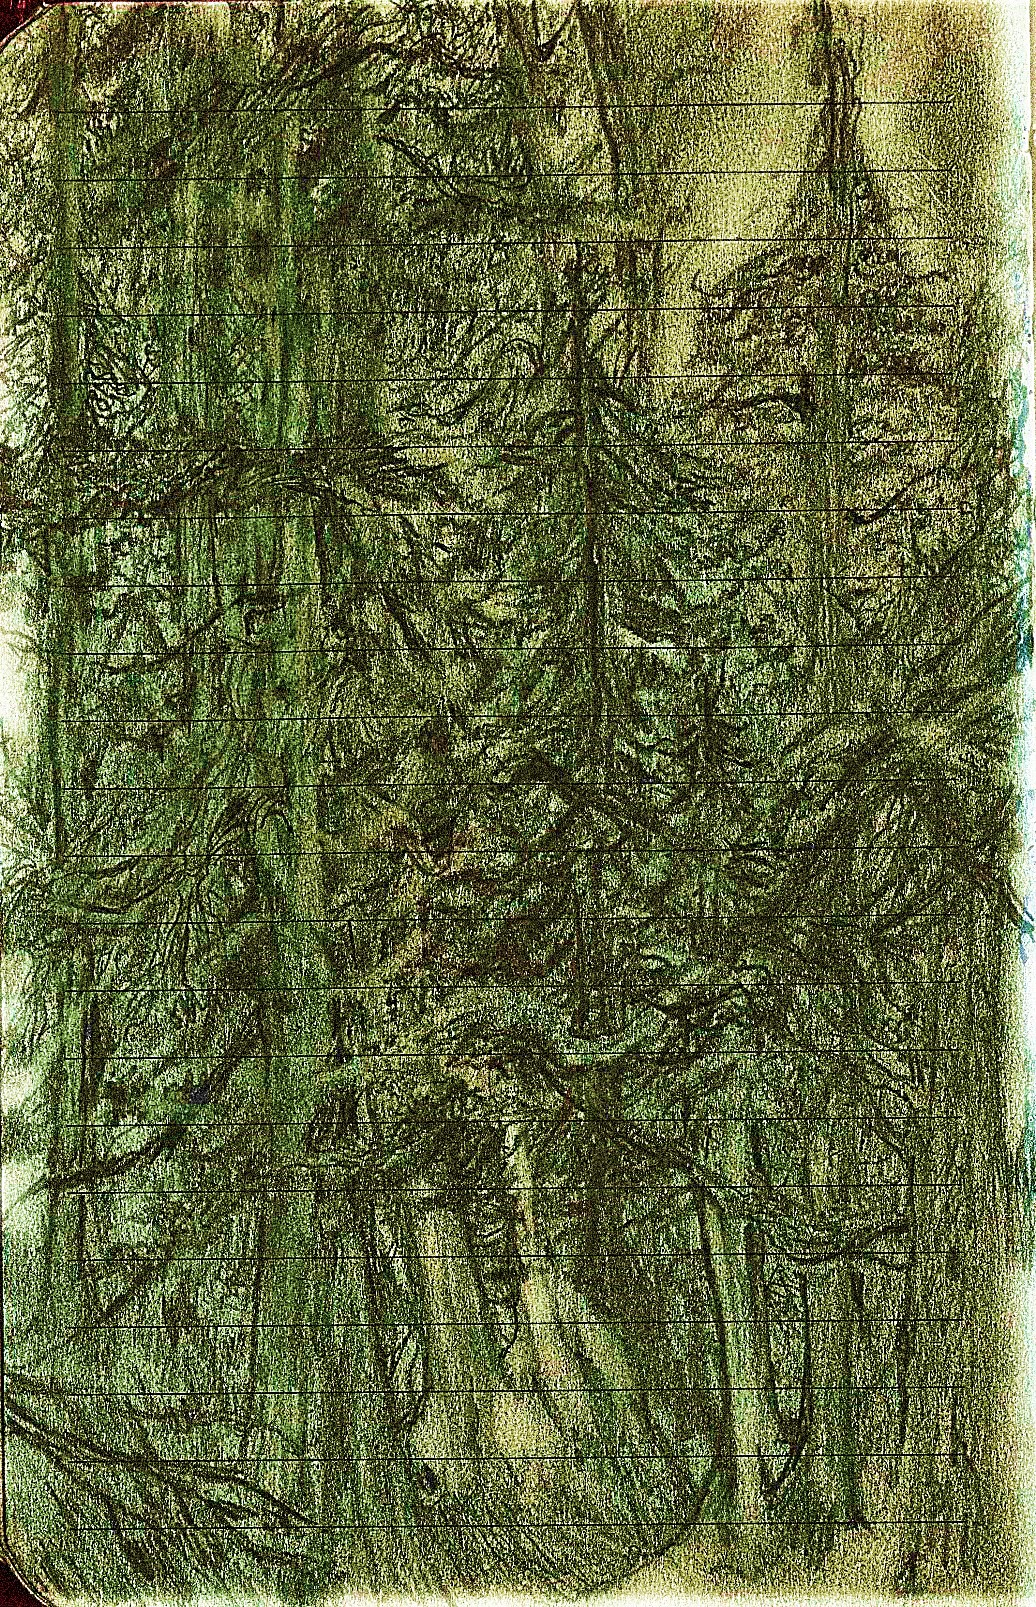 Banf-forest-4